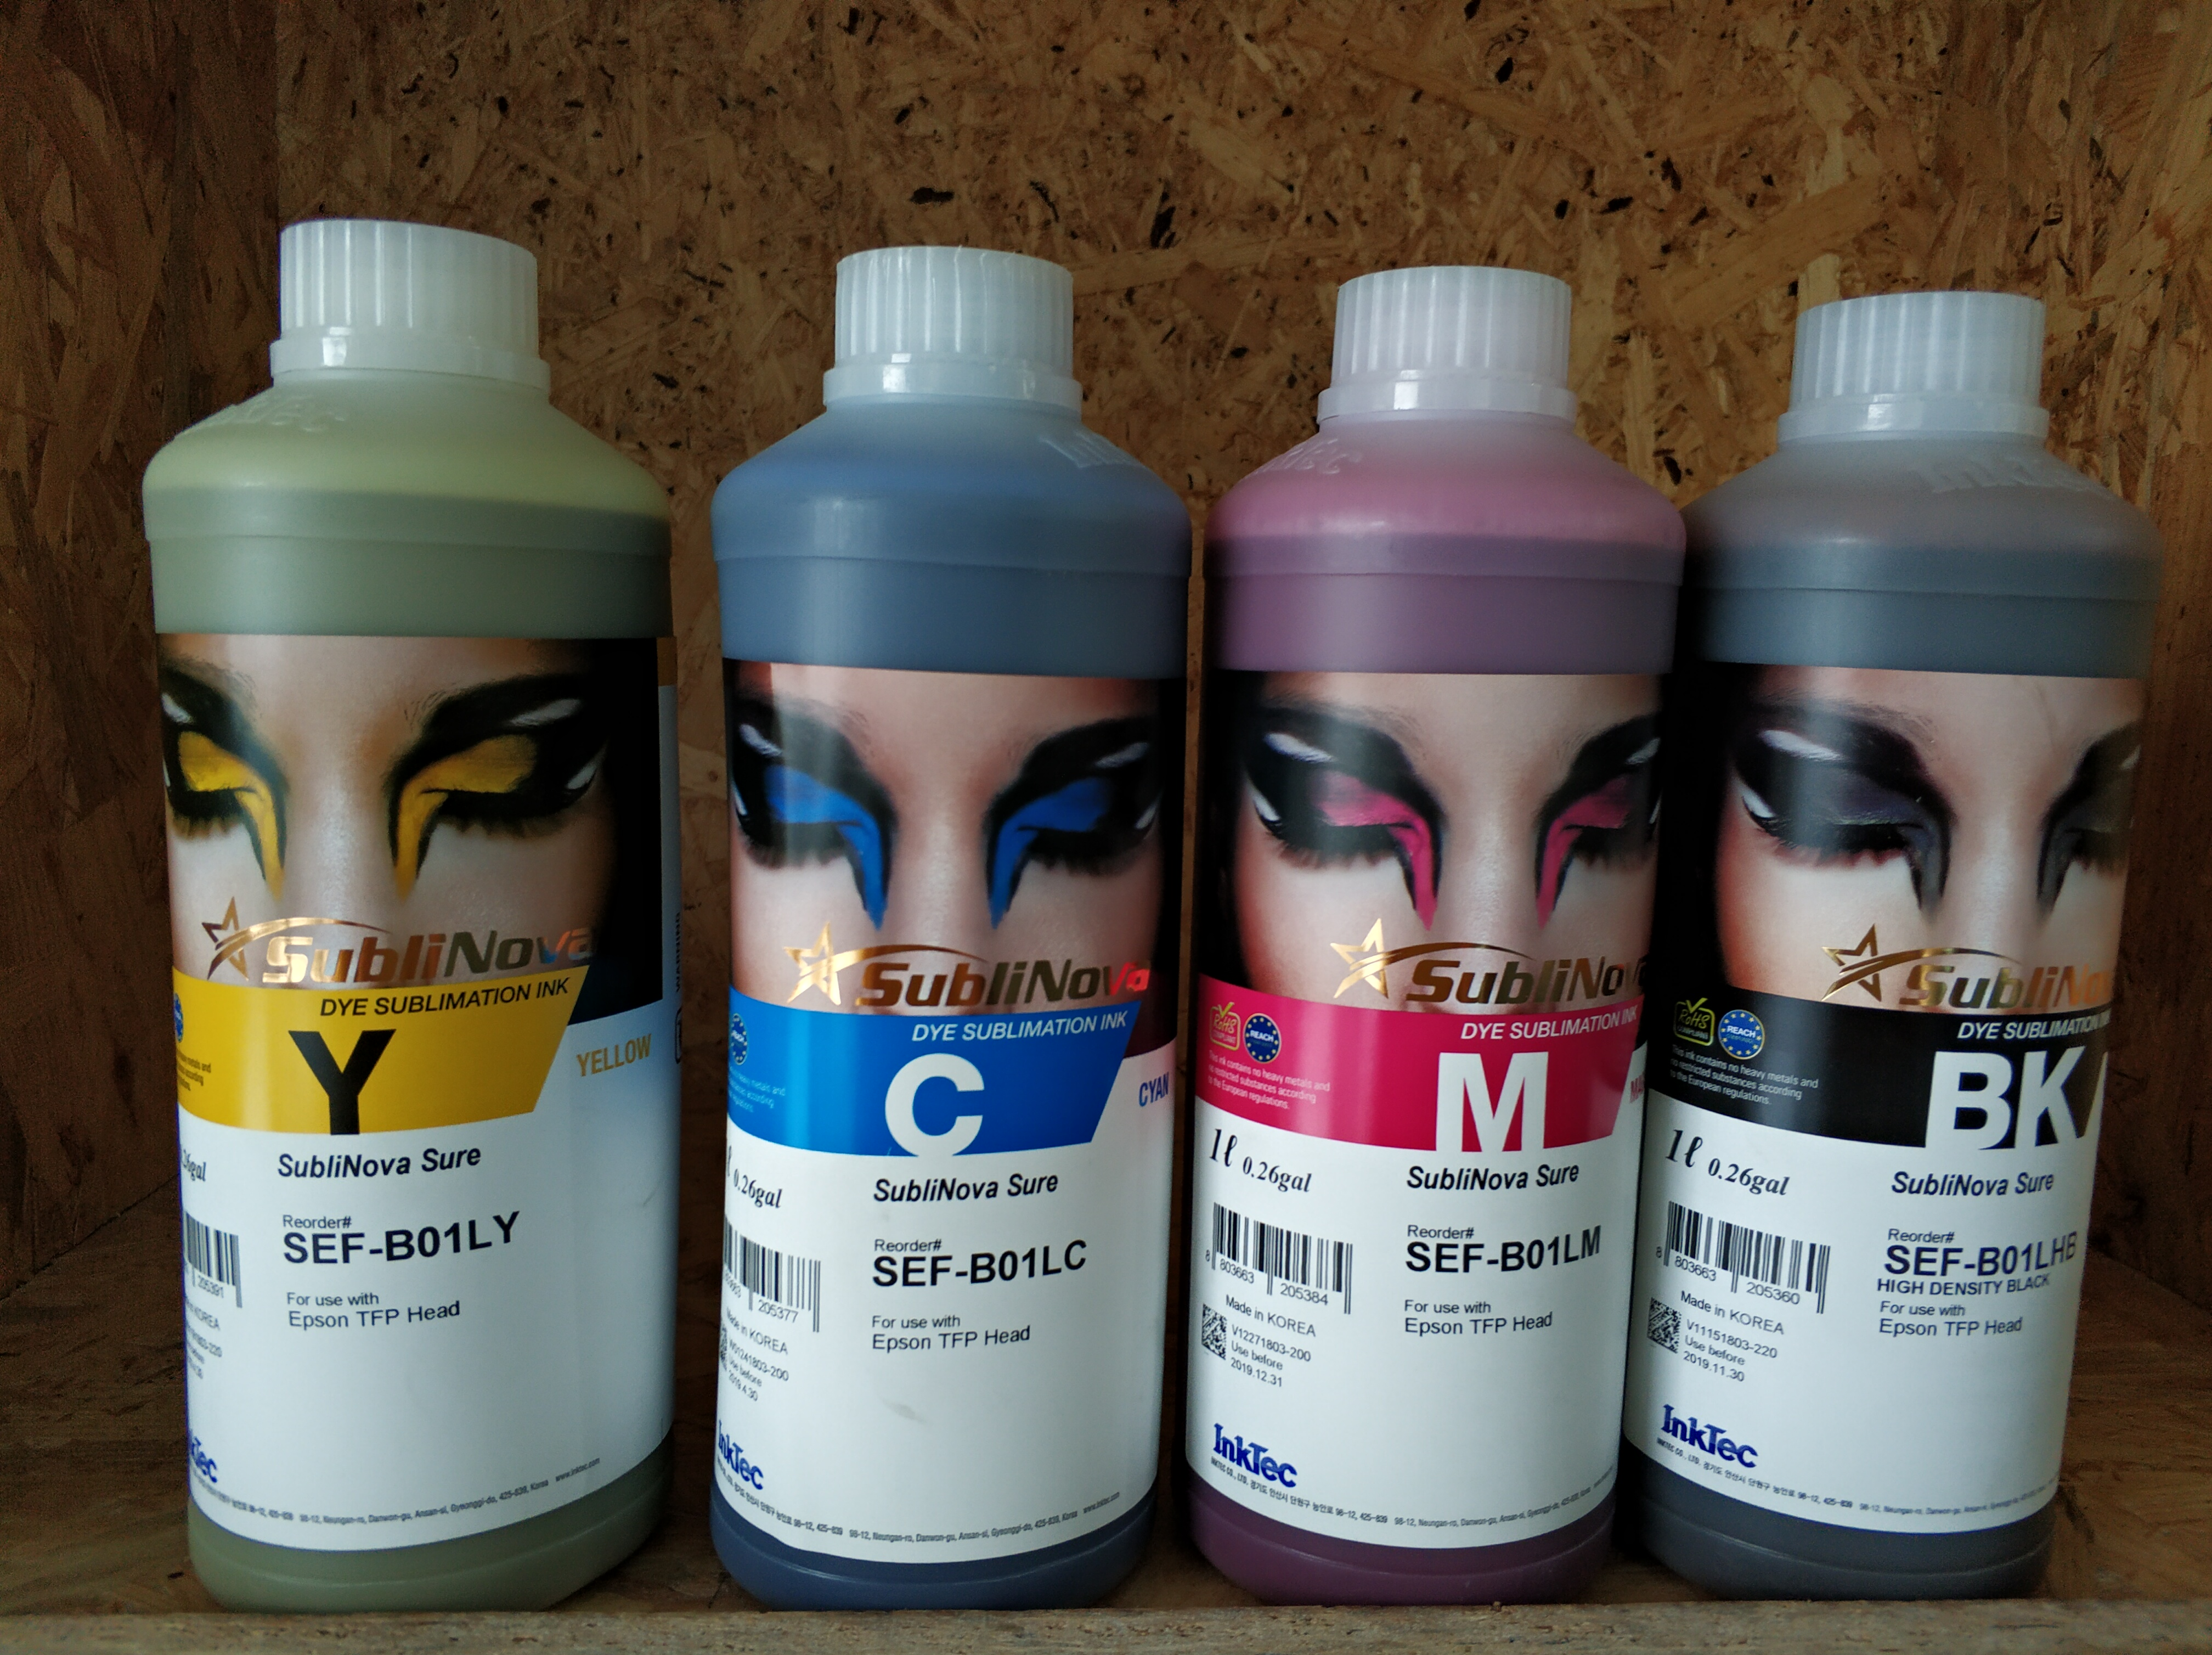 What's the best sublimation ink for T-Shirts?